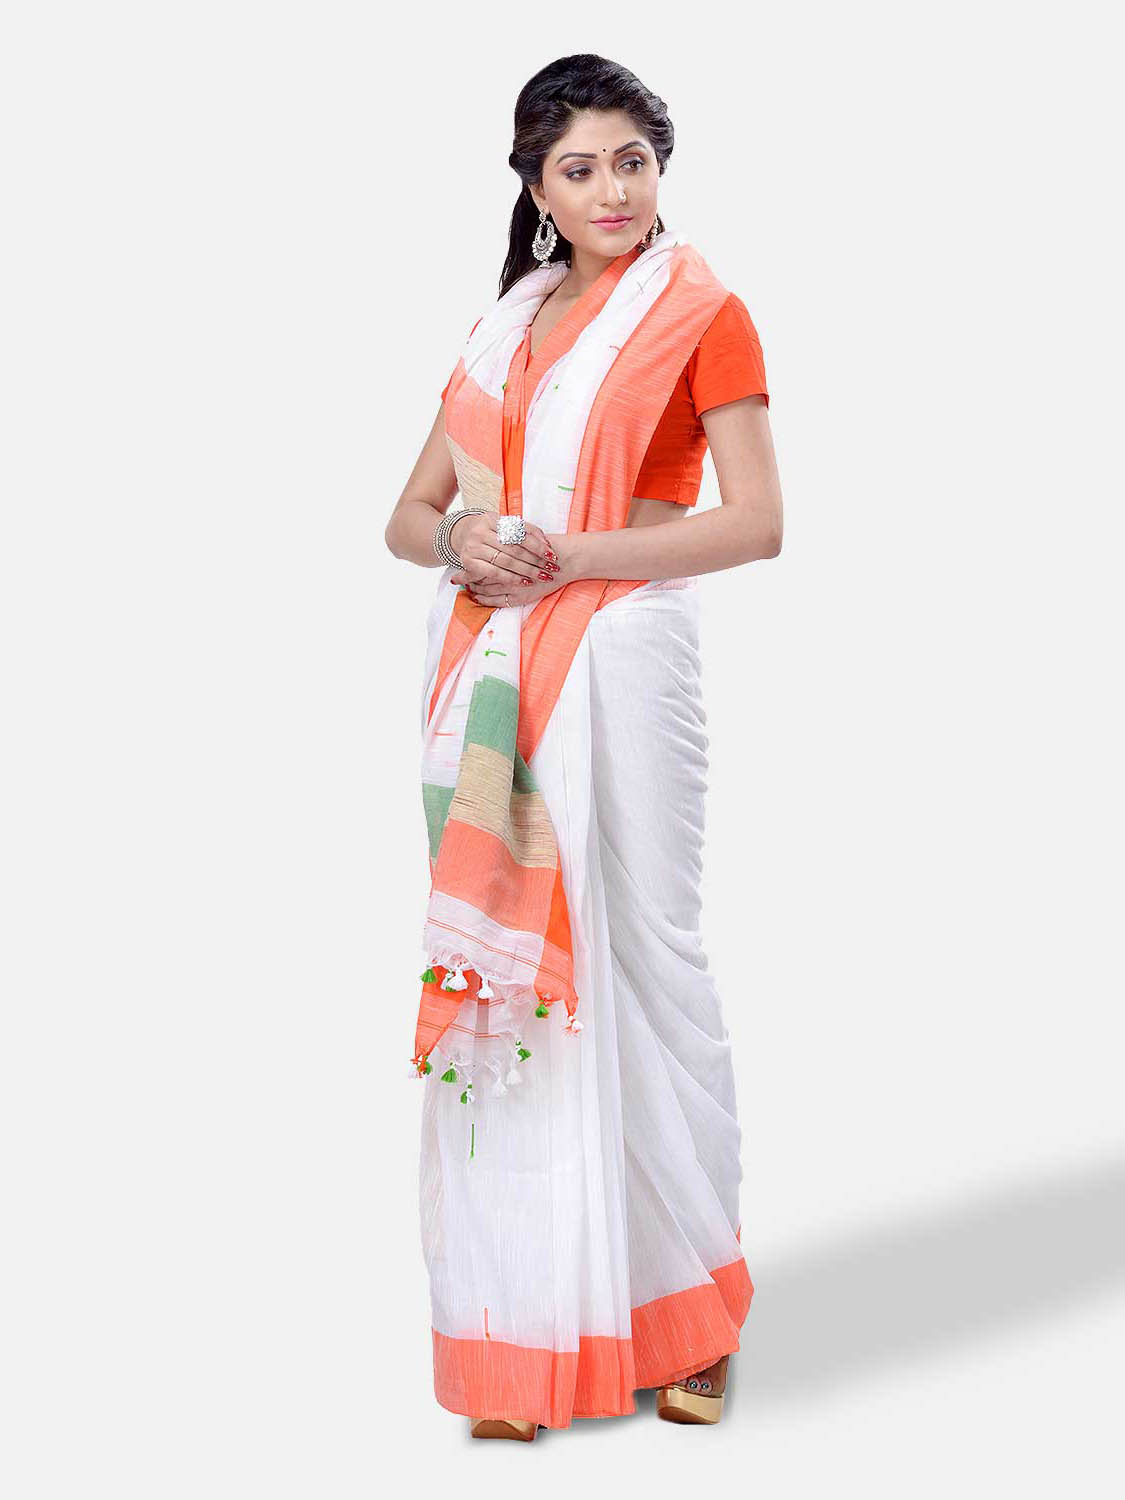 Women's Pure Cotton Handloom Flag Colour Saree Orange, White and Green